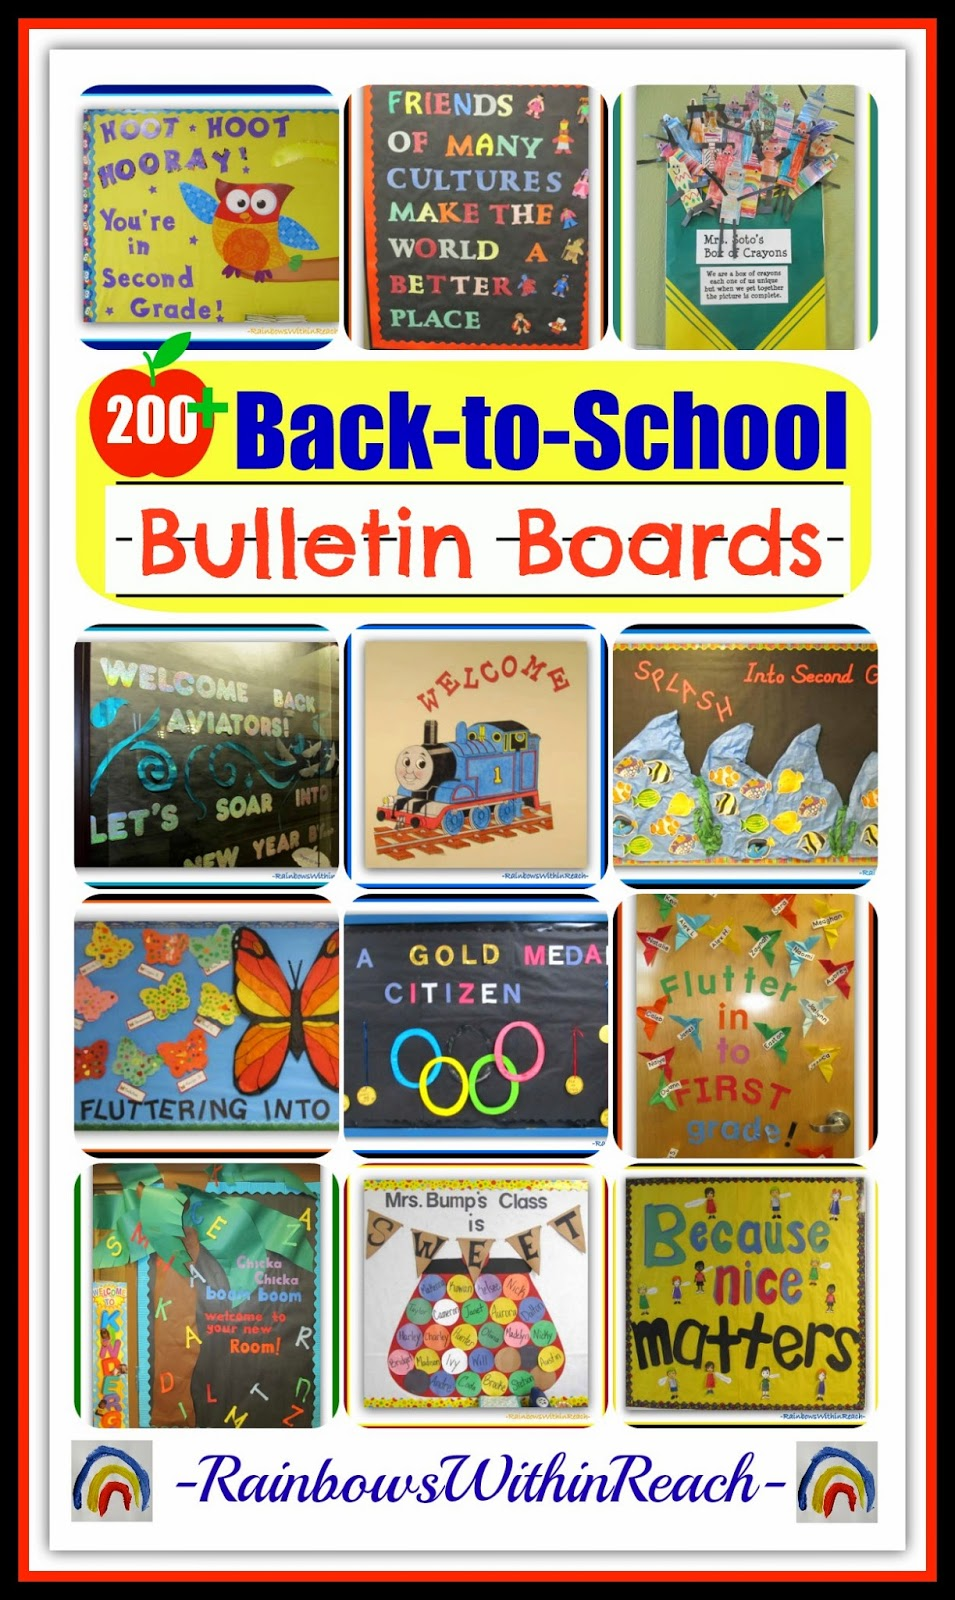 200+++ Back-to-School Bulletin Boards and Classroom Doors at RainbowsWithinReach